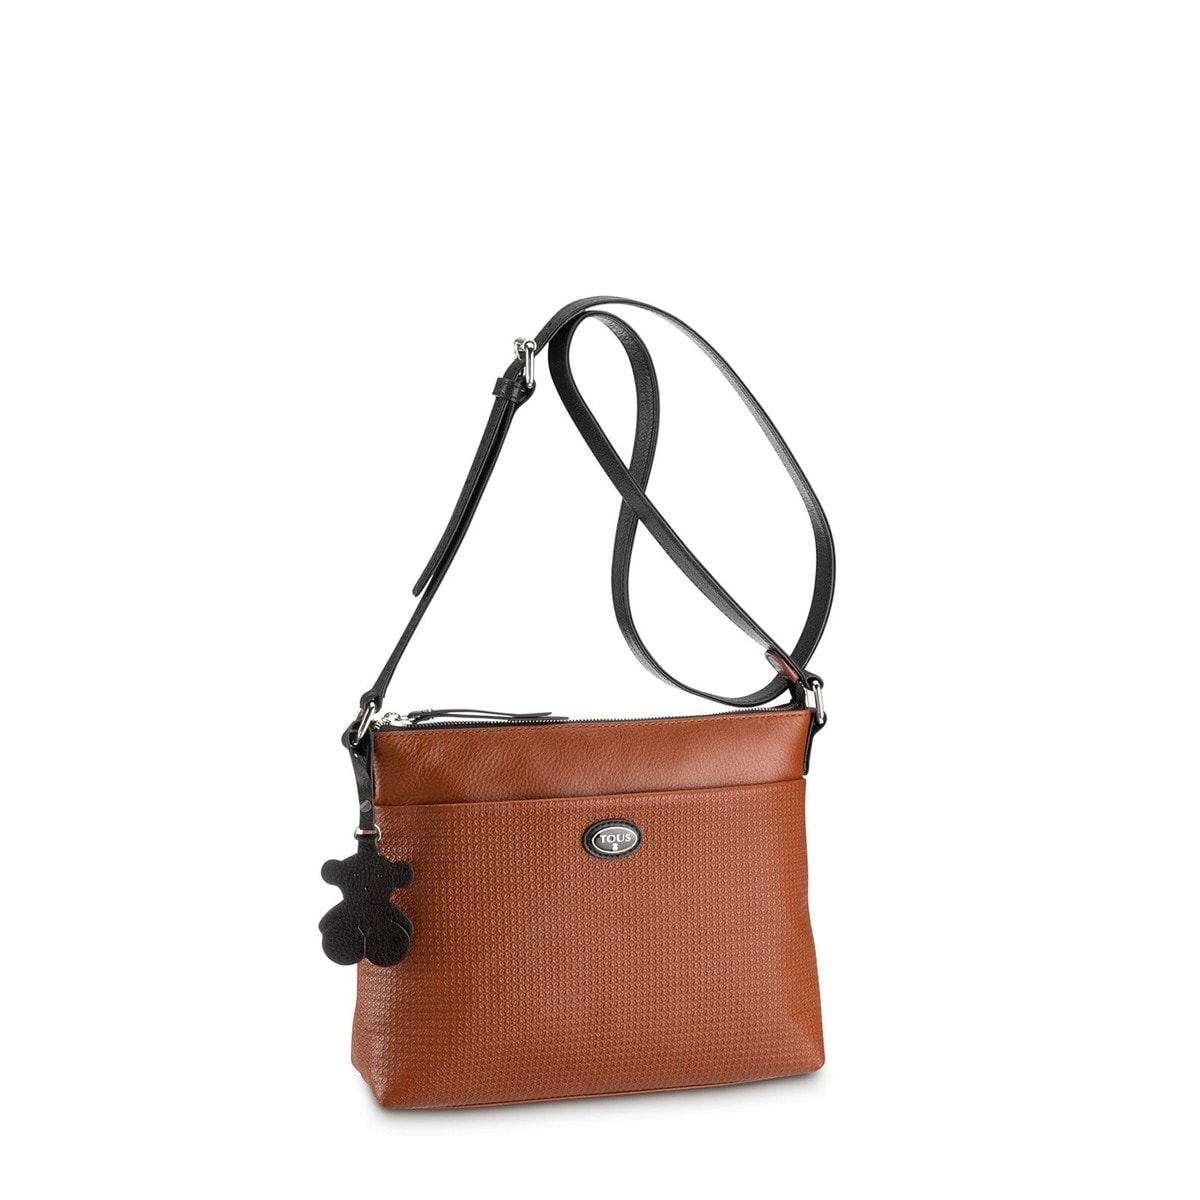 Natural-black colored Leather Urban Pixie Crossbody bag